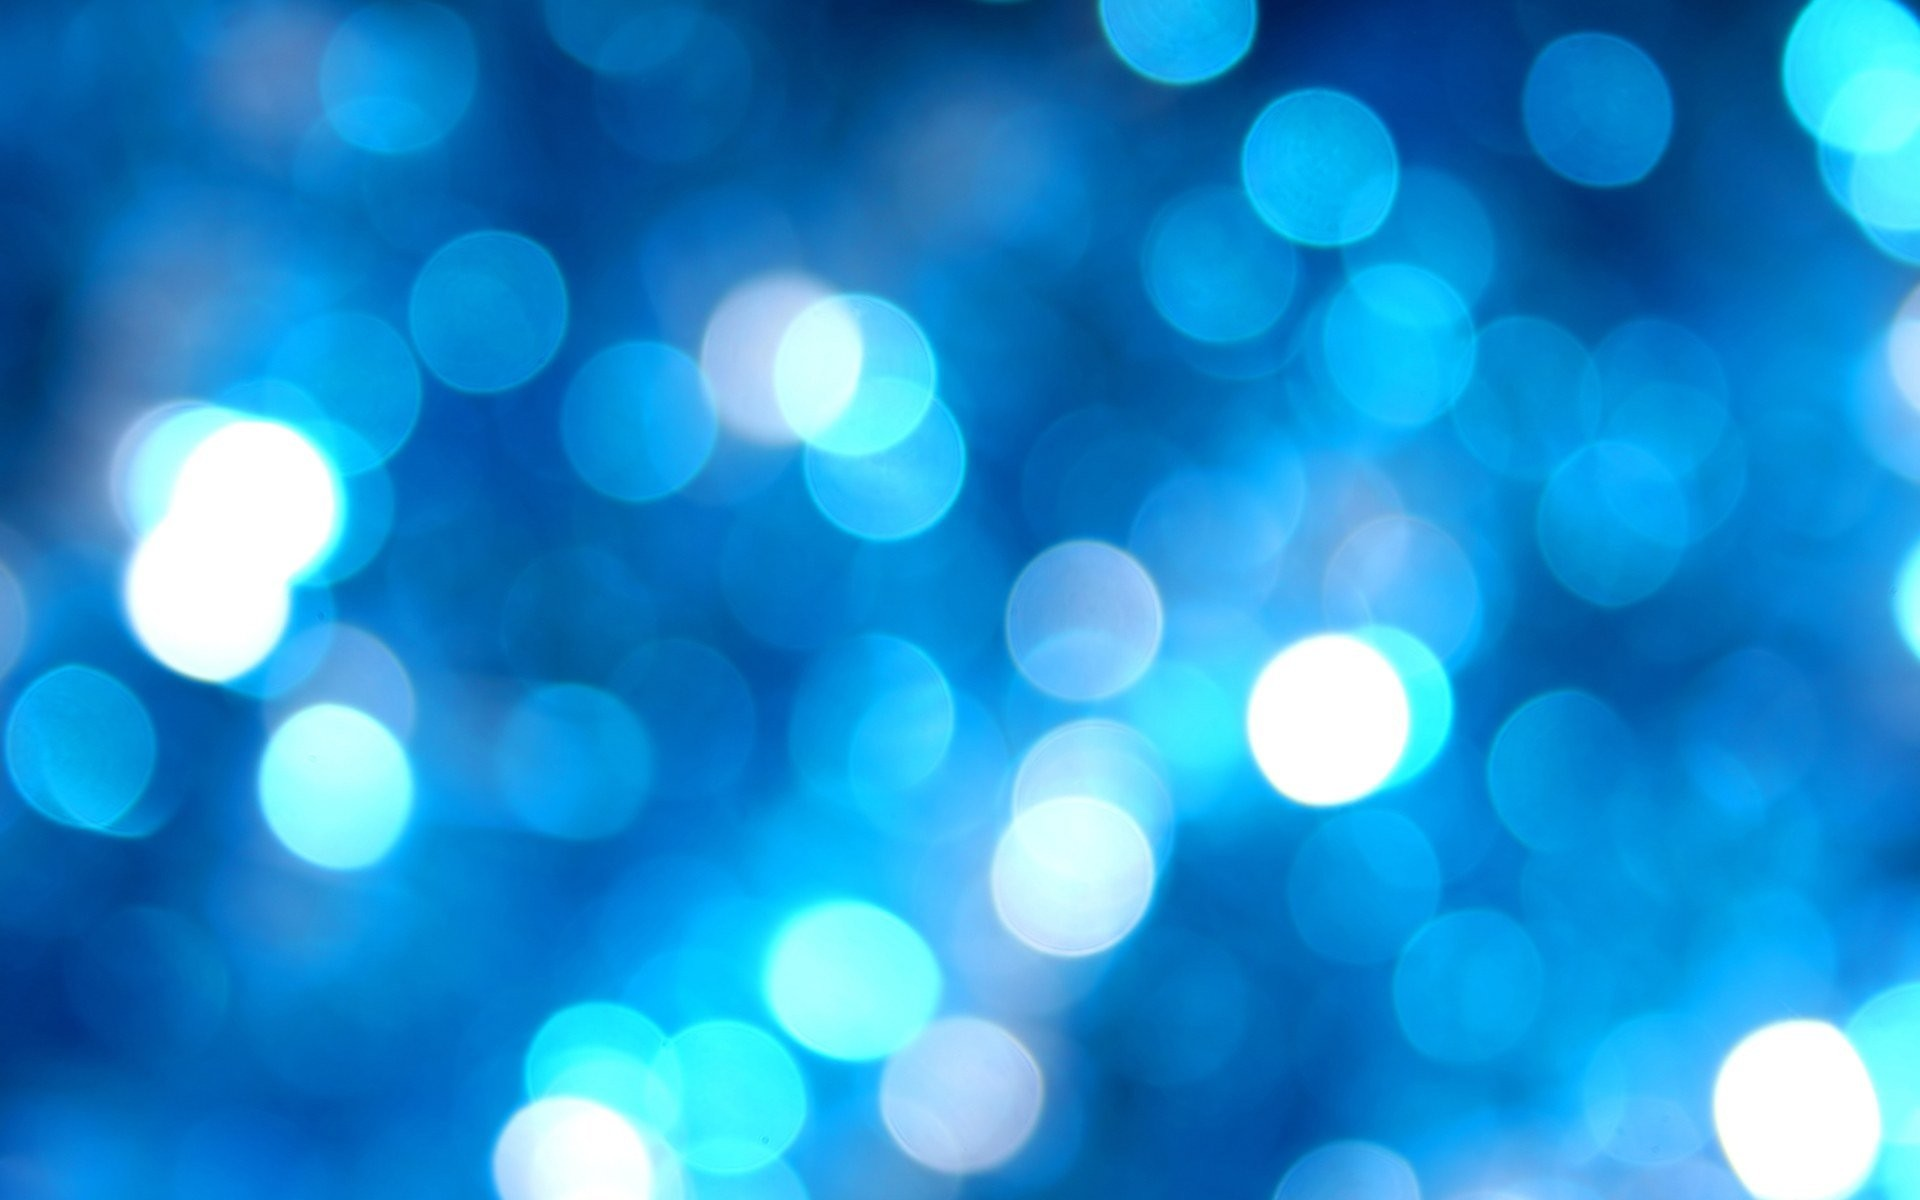 1920x1200 backgrounds-twitter-cool-blue-images-background.jpg (1920×